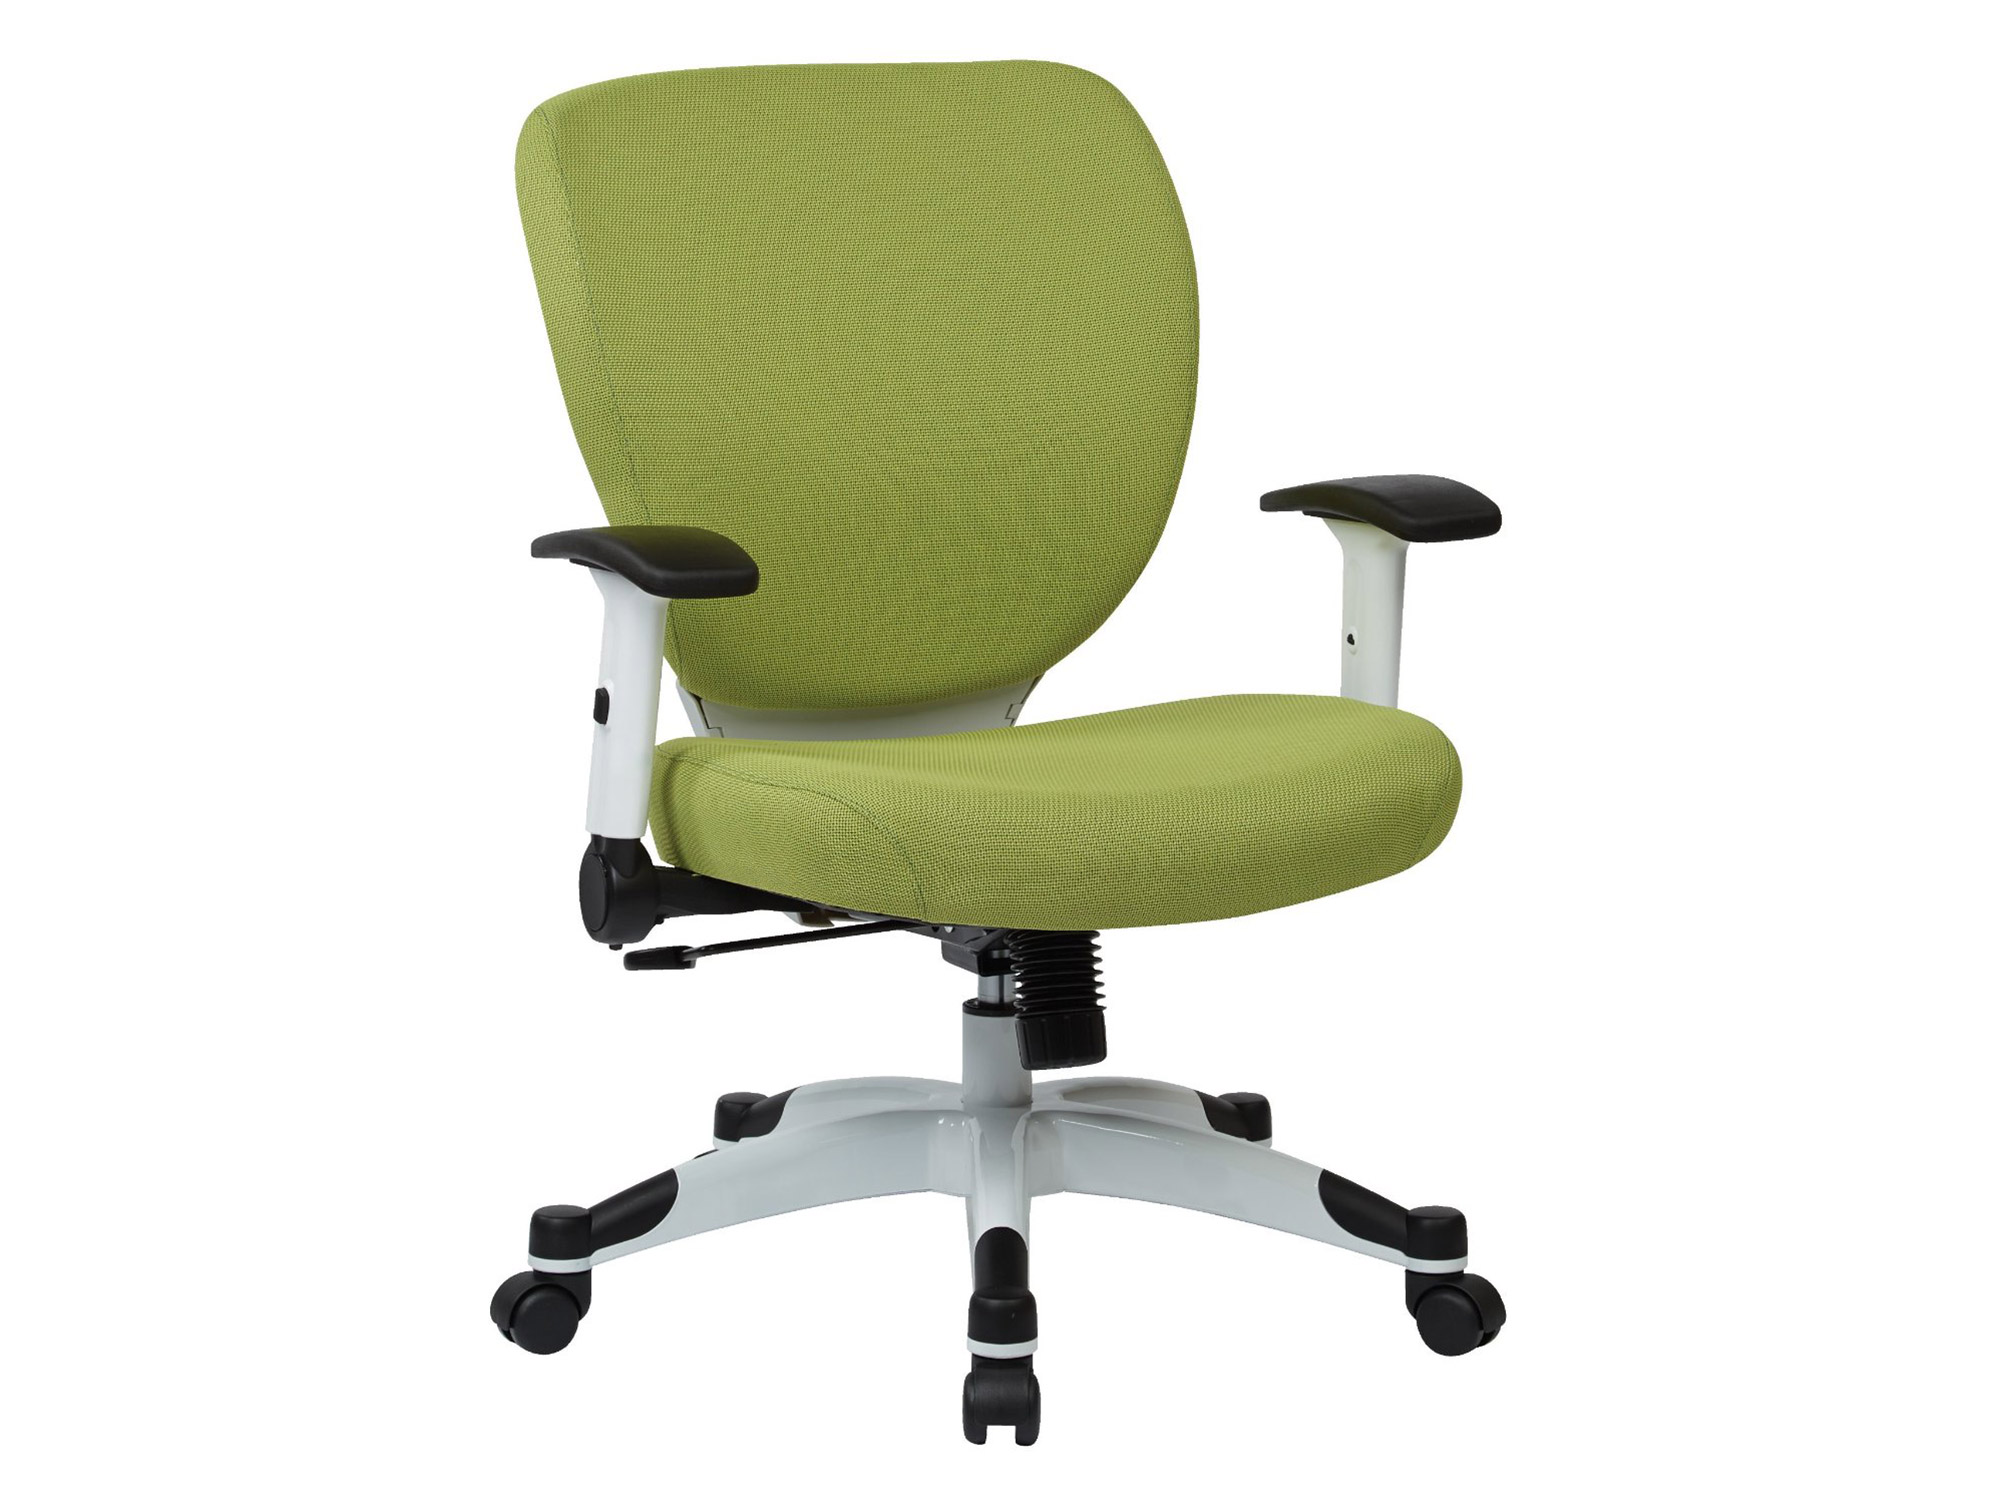 Office Task Chairs From Star Shown In Olive Green